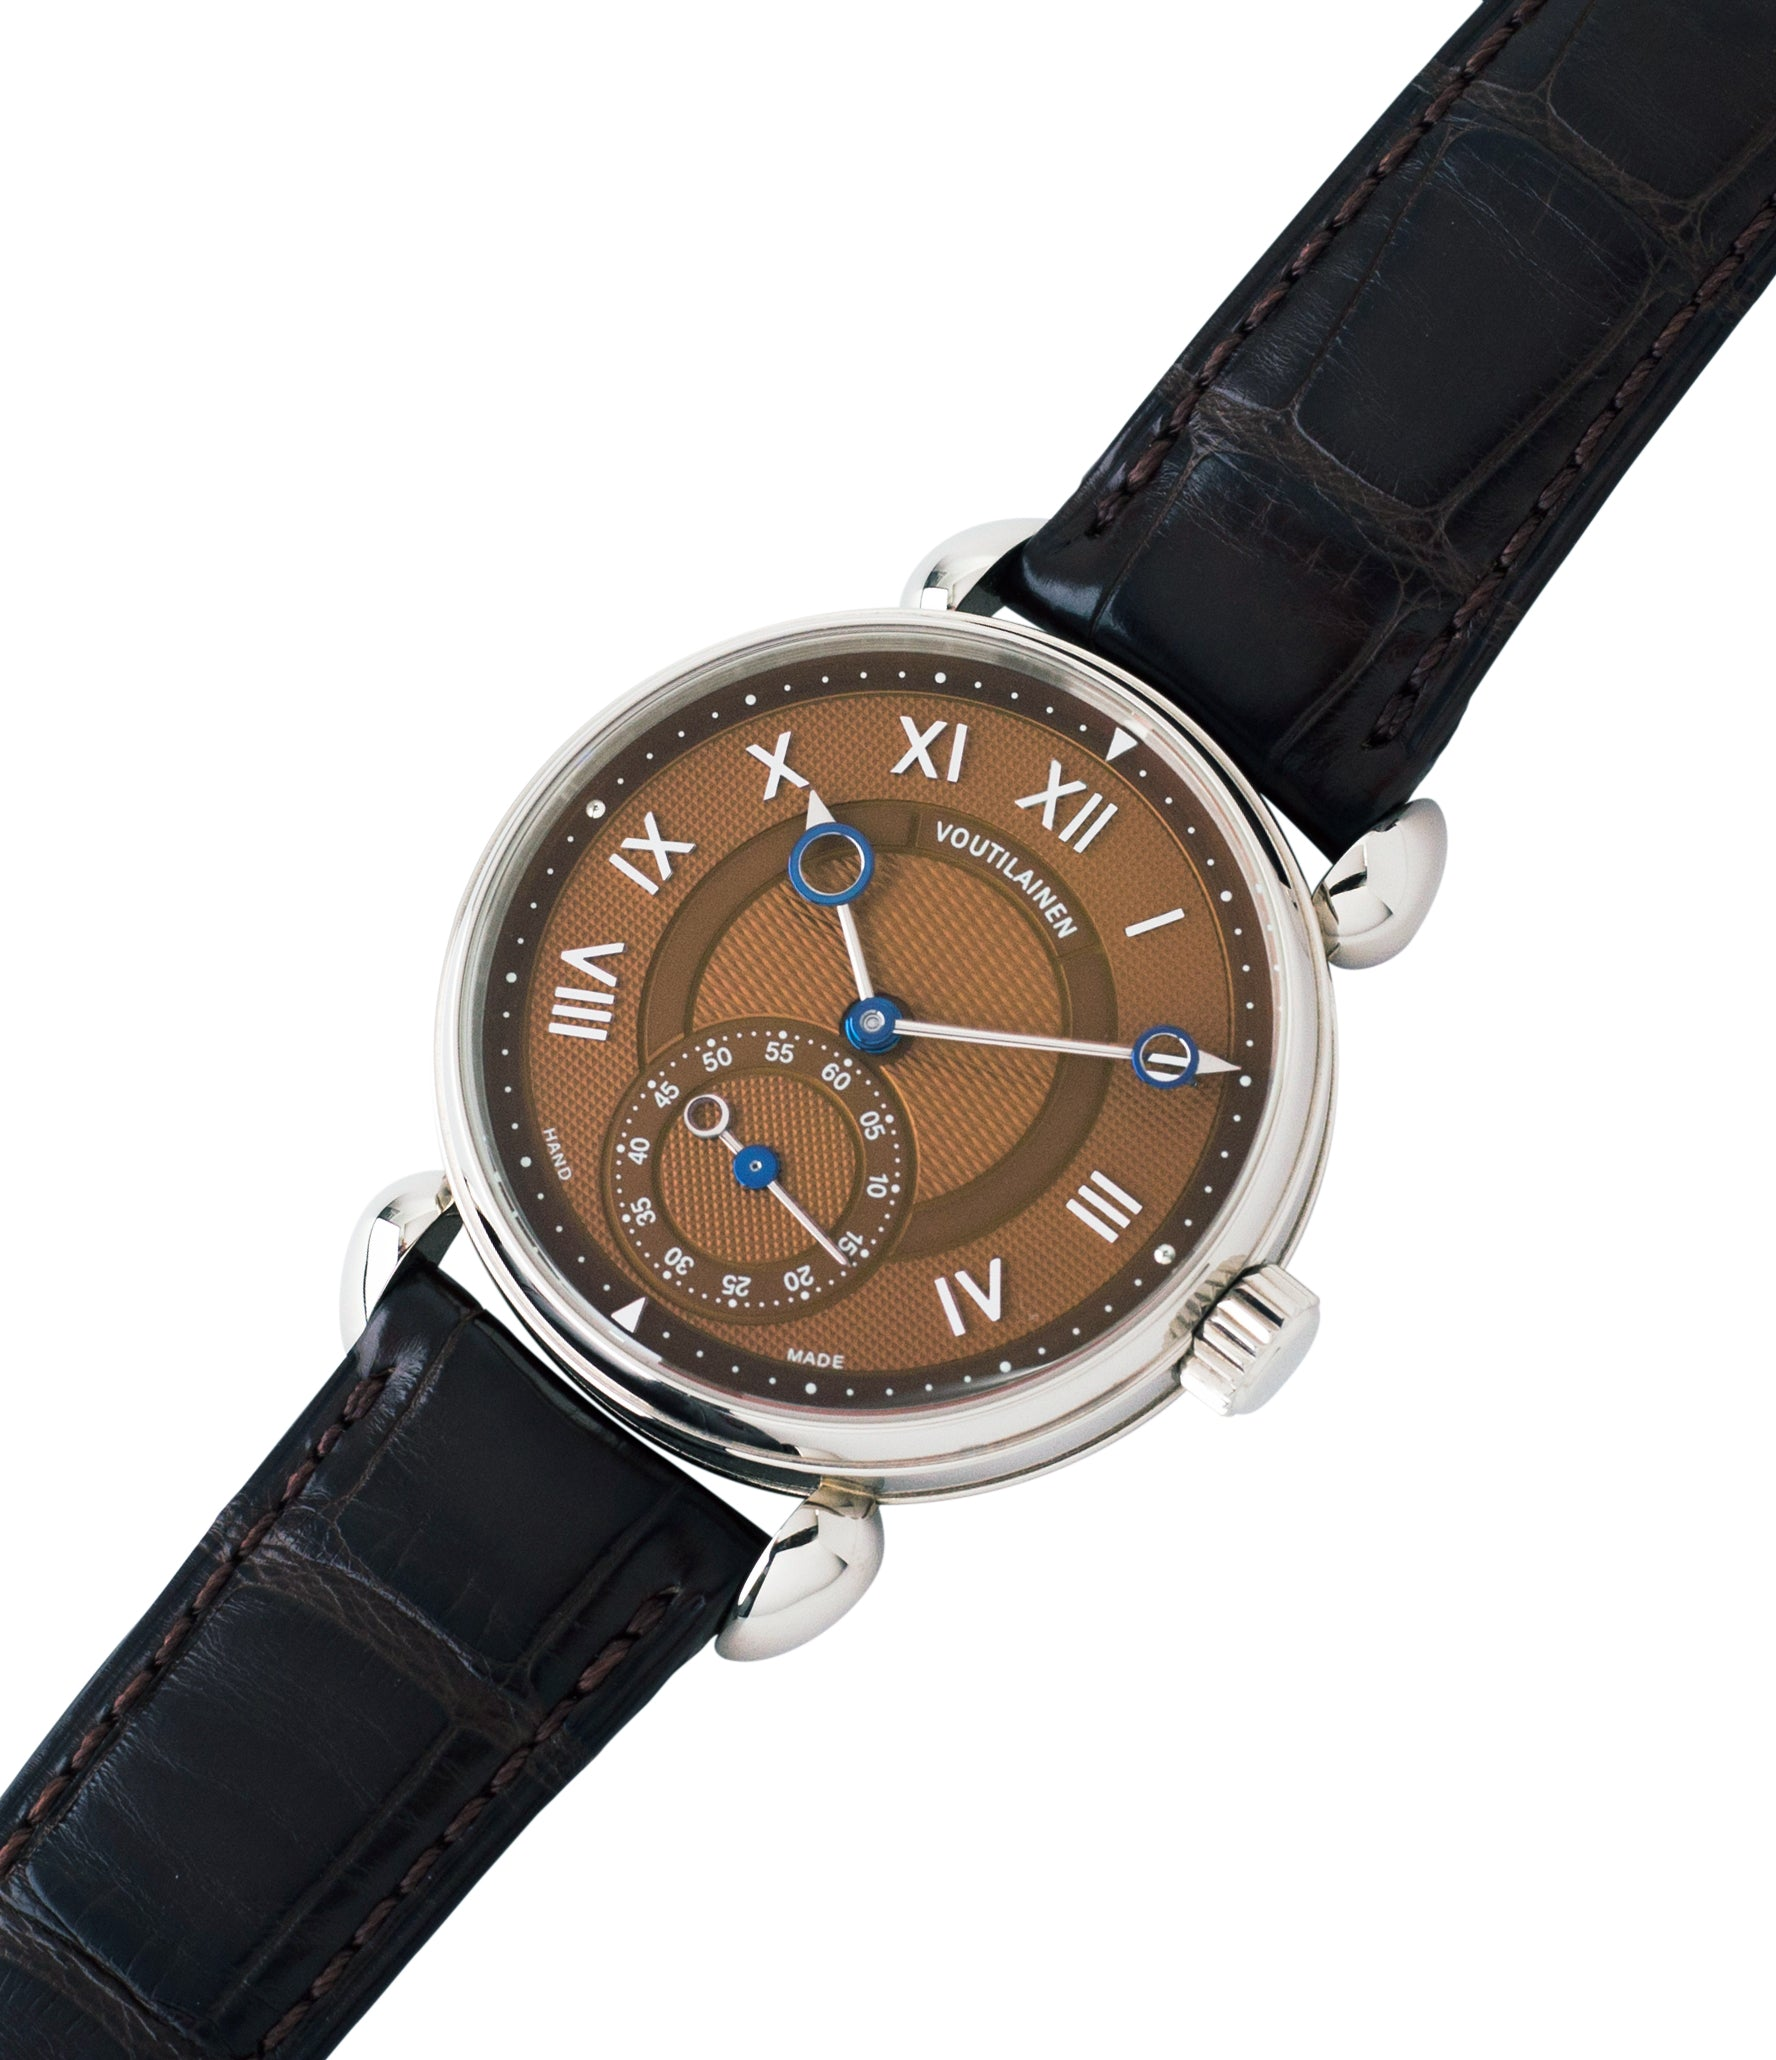 shop Kari Voutilainen Observatoire Limited Edition rare brown dial watch online at A Collected Man London specialist endorsed seller of pre-owned independent watchmakers